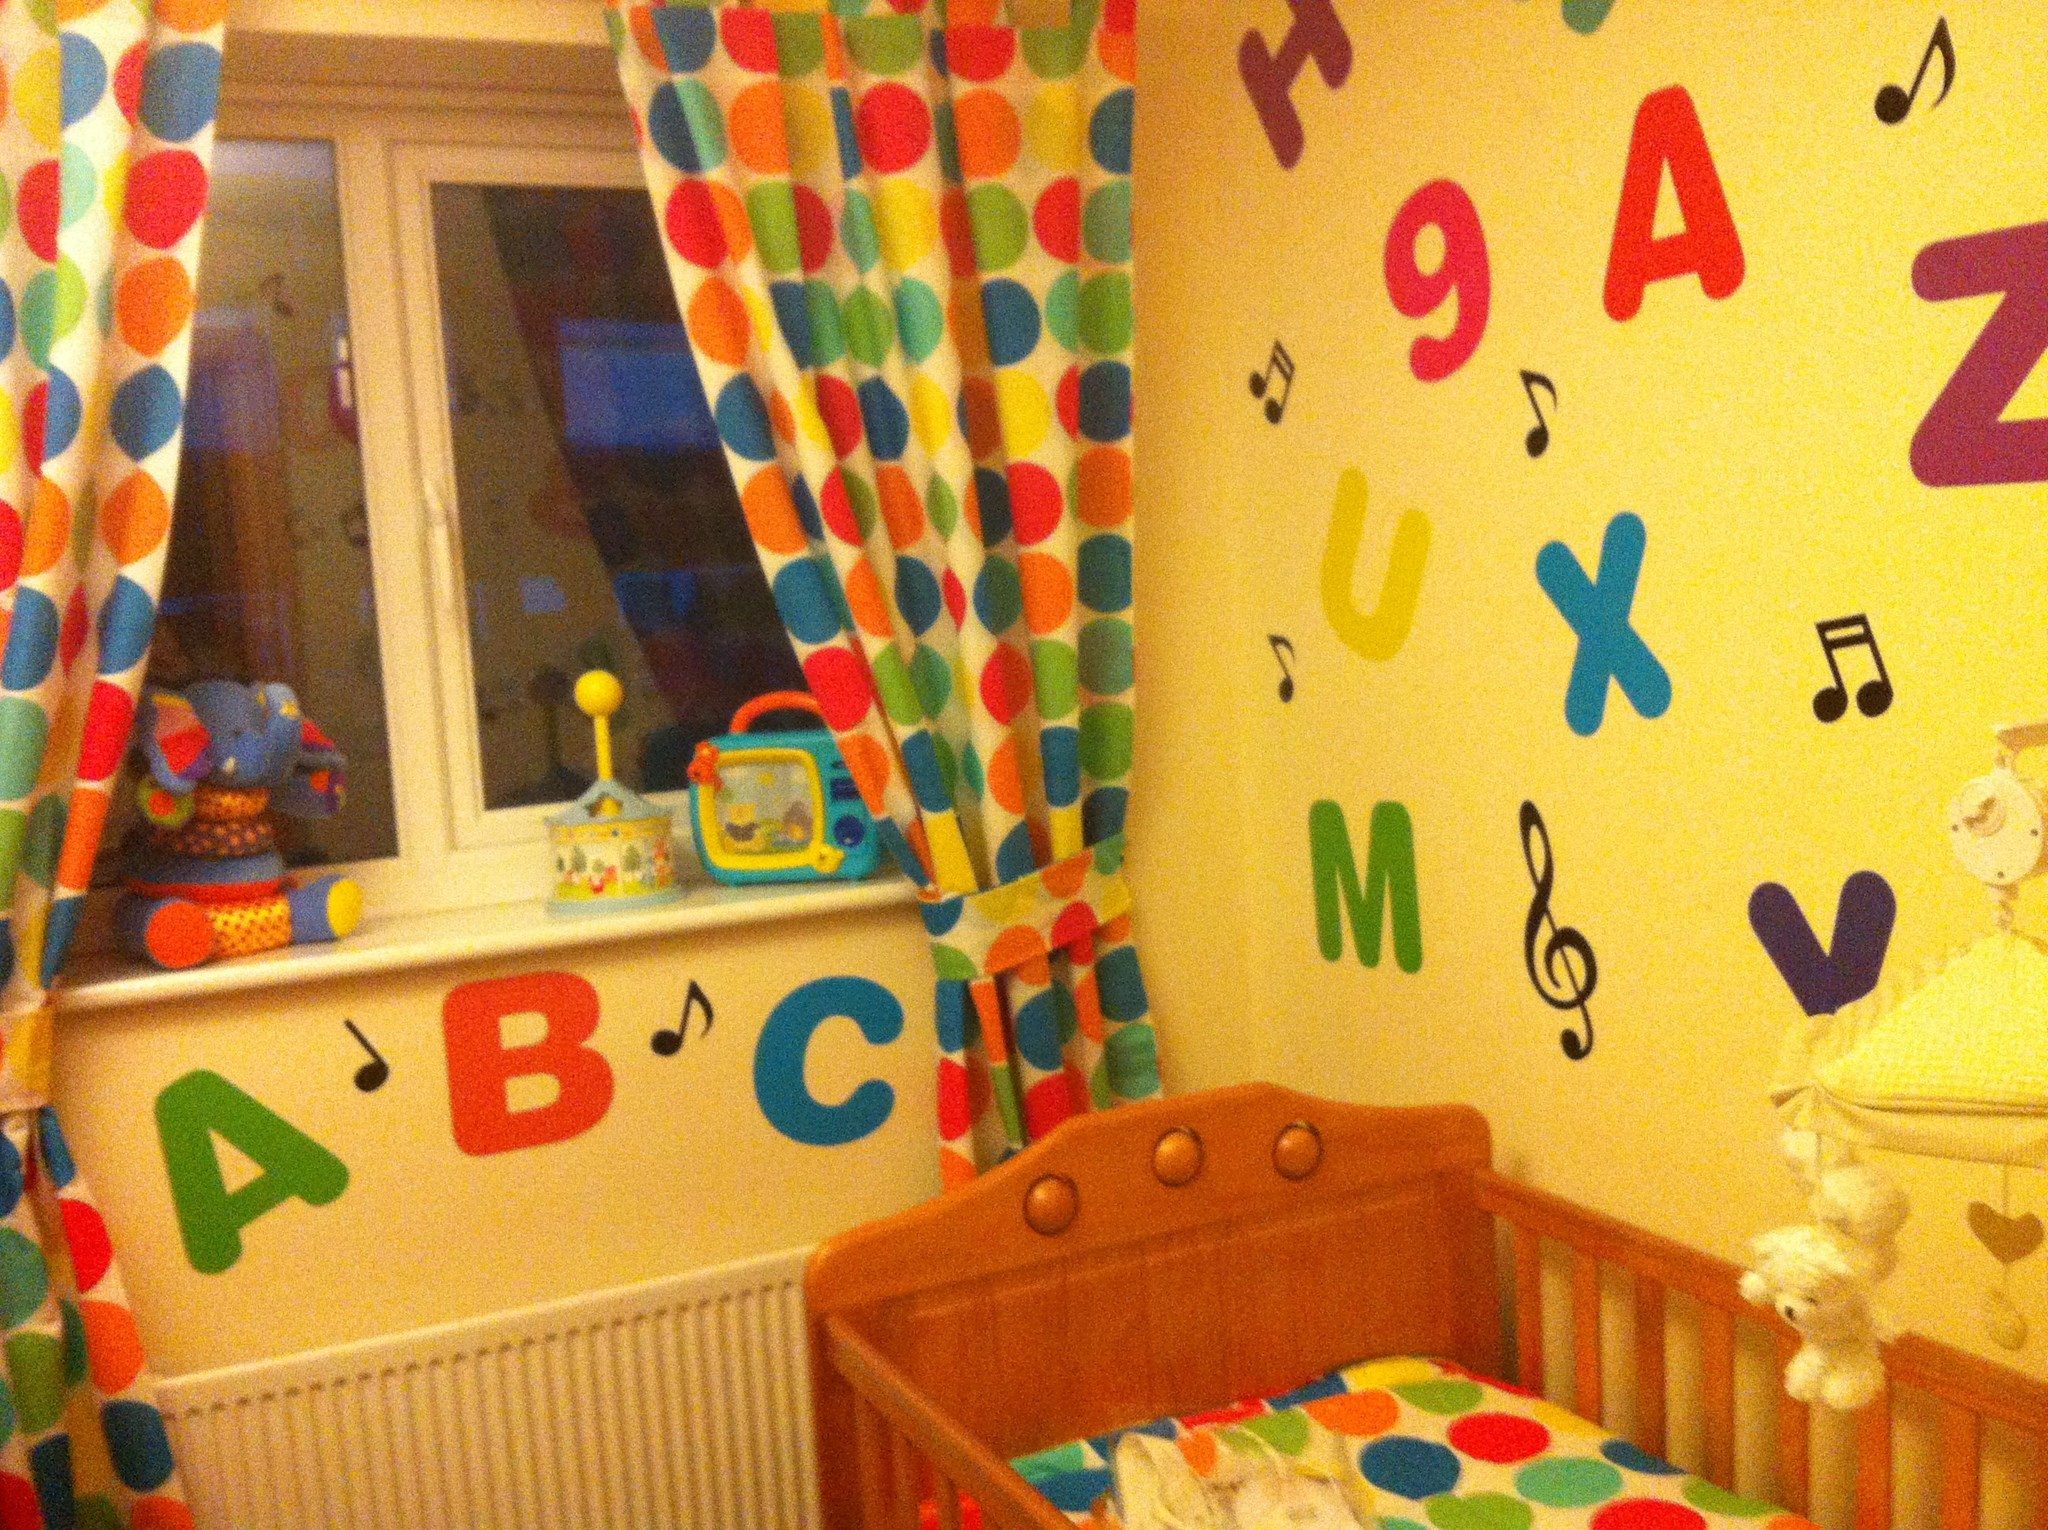 Lucians Room